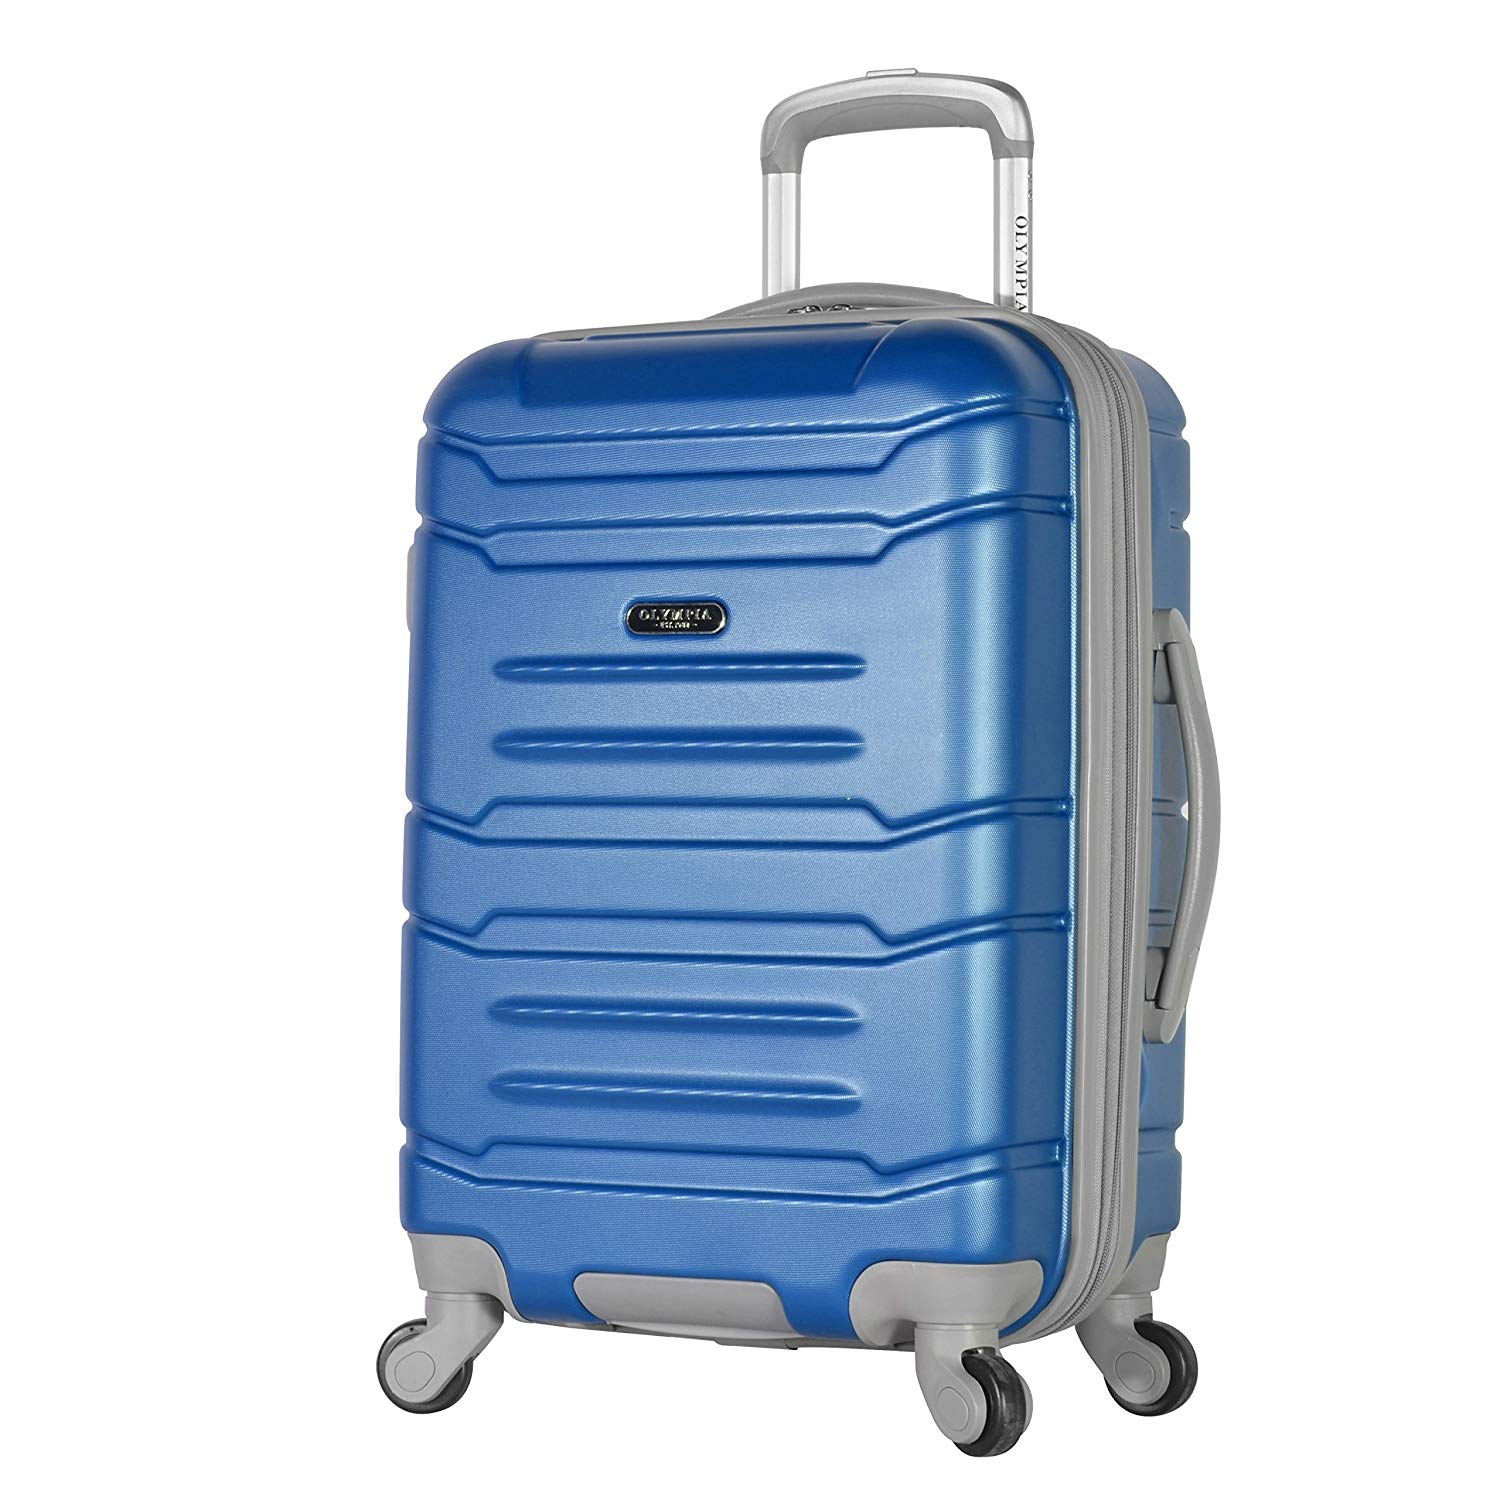 "Olympia 21"" Carry-on Spinner, Handgepäck, Navy (Blau) - HF-2221-NY"